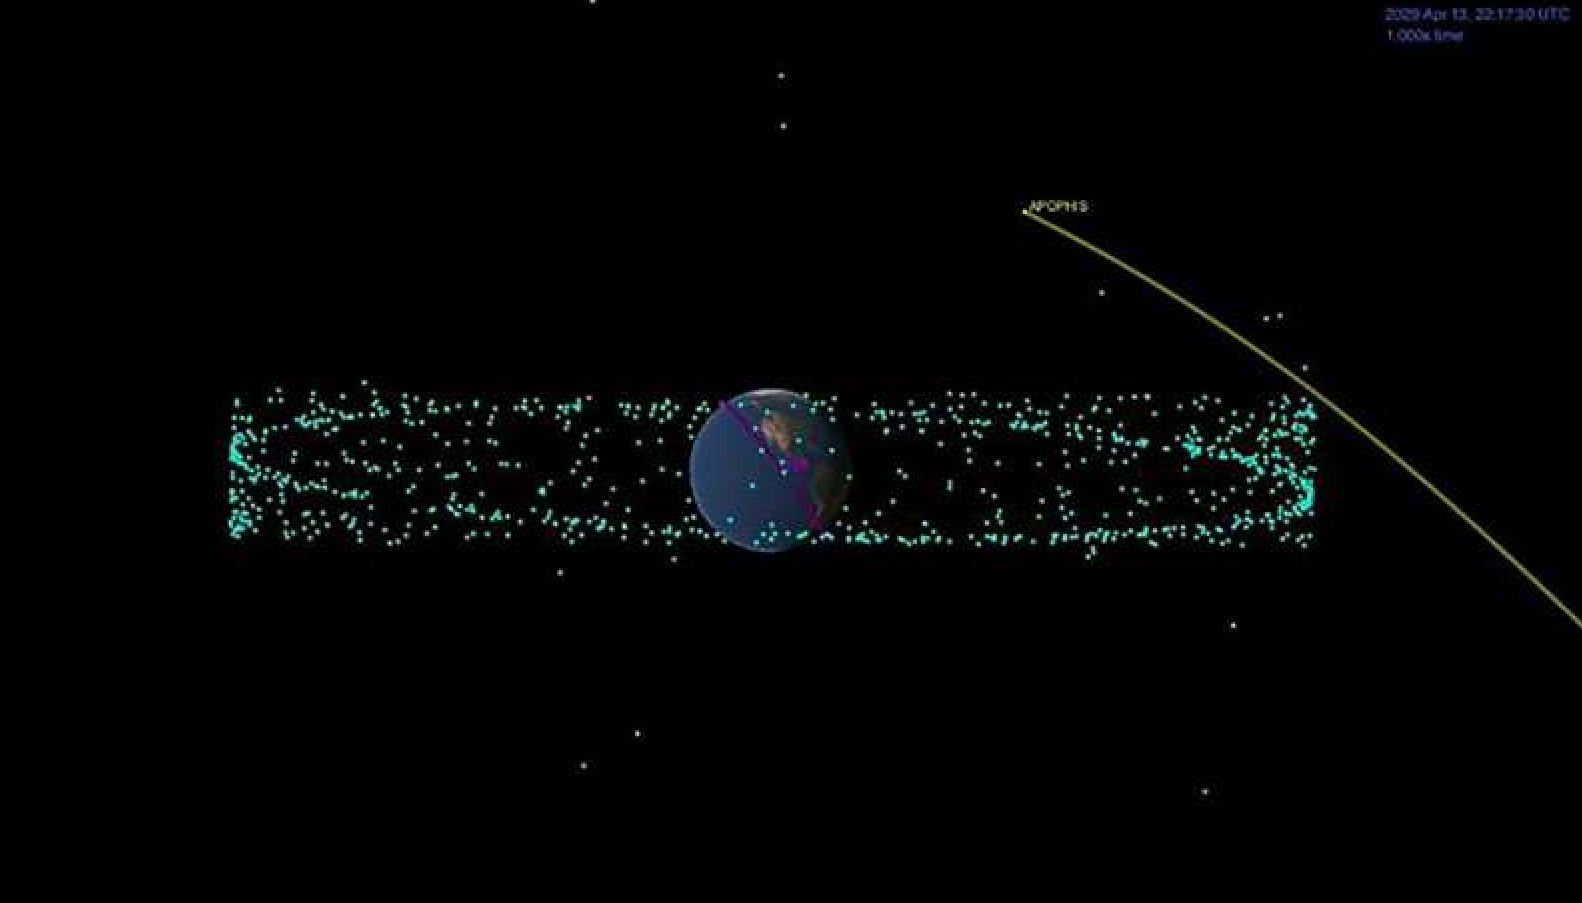 In 2029, the asteroid Apophis will come closer to Earth than some of our satellites.- Image Credits: NASA/JPL-Caltech